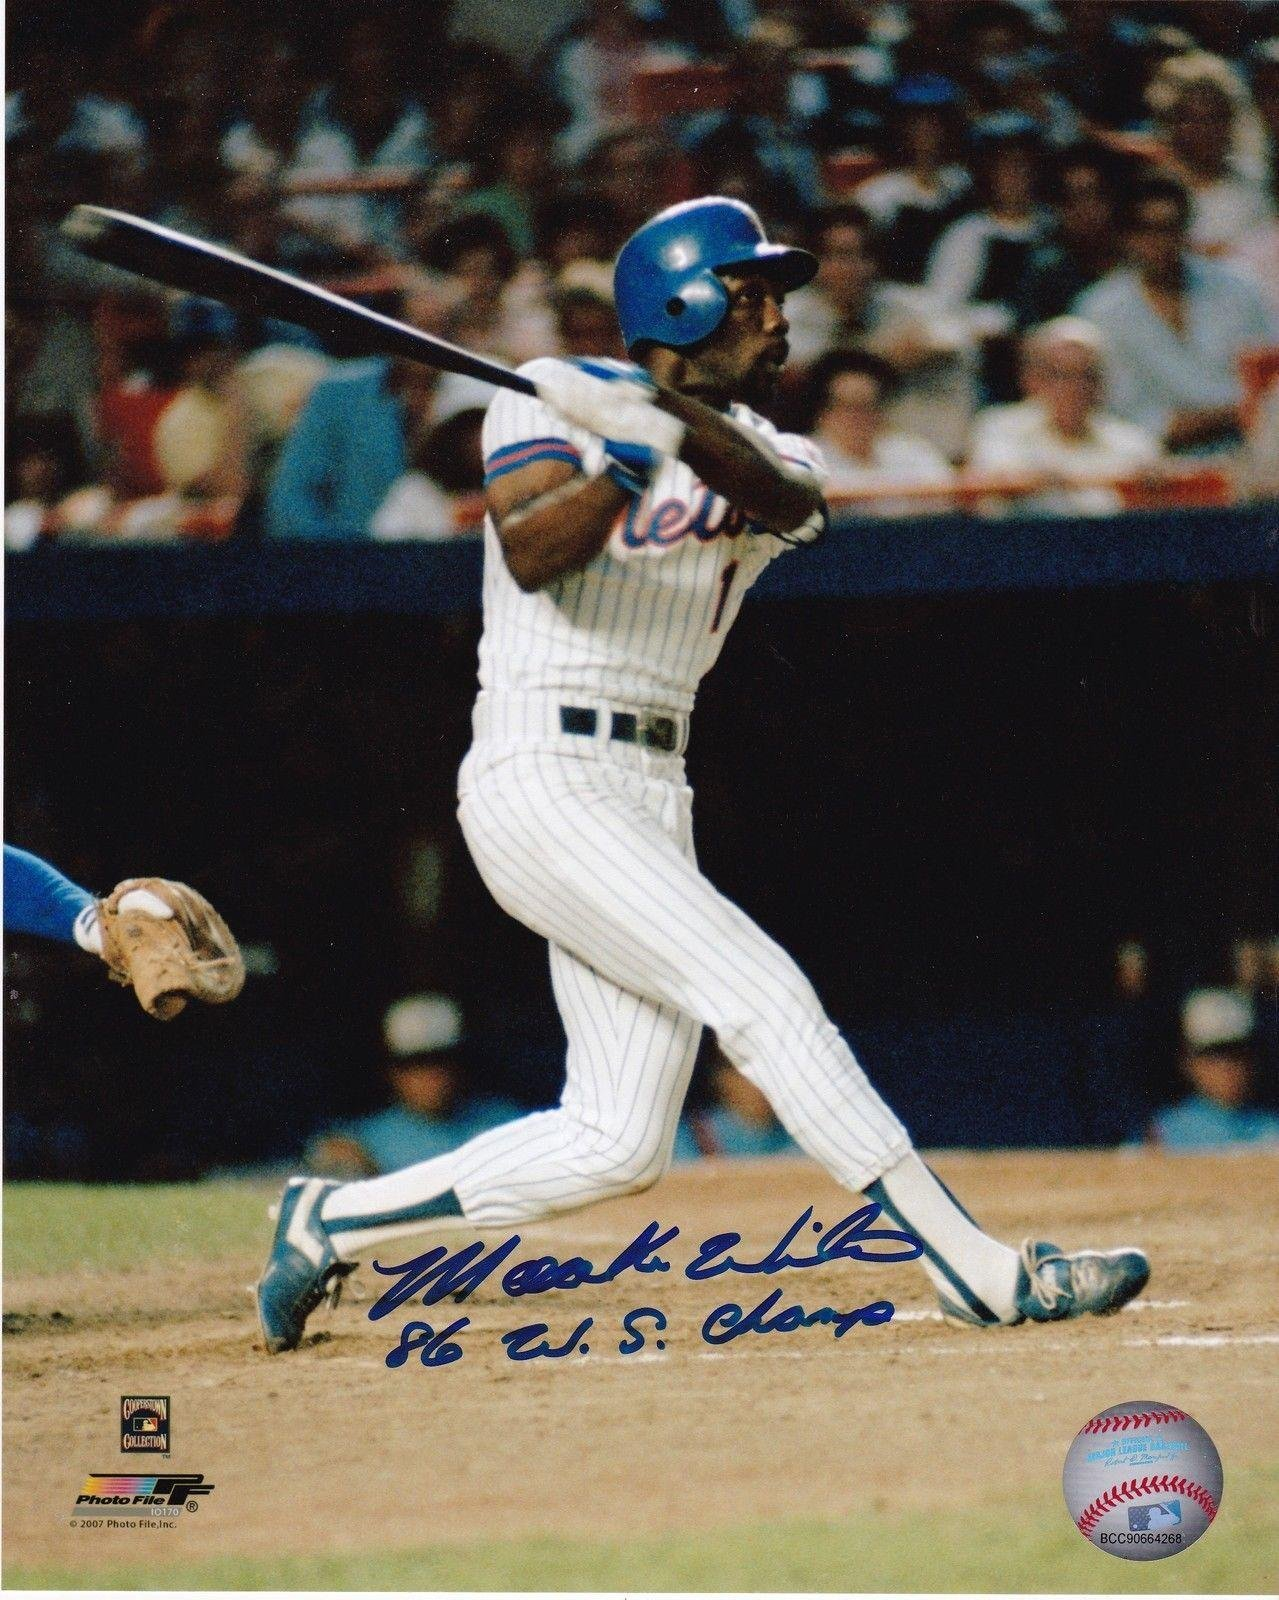 Mookie Wilson Autographed Photo 86 WS CHAMPS 8x10 Autographed MLB Photos